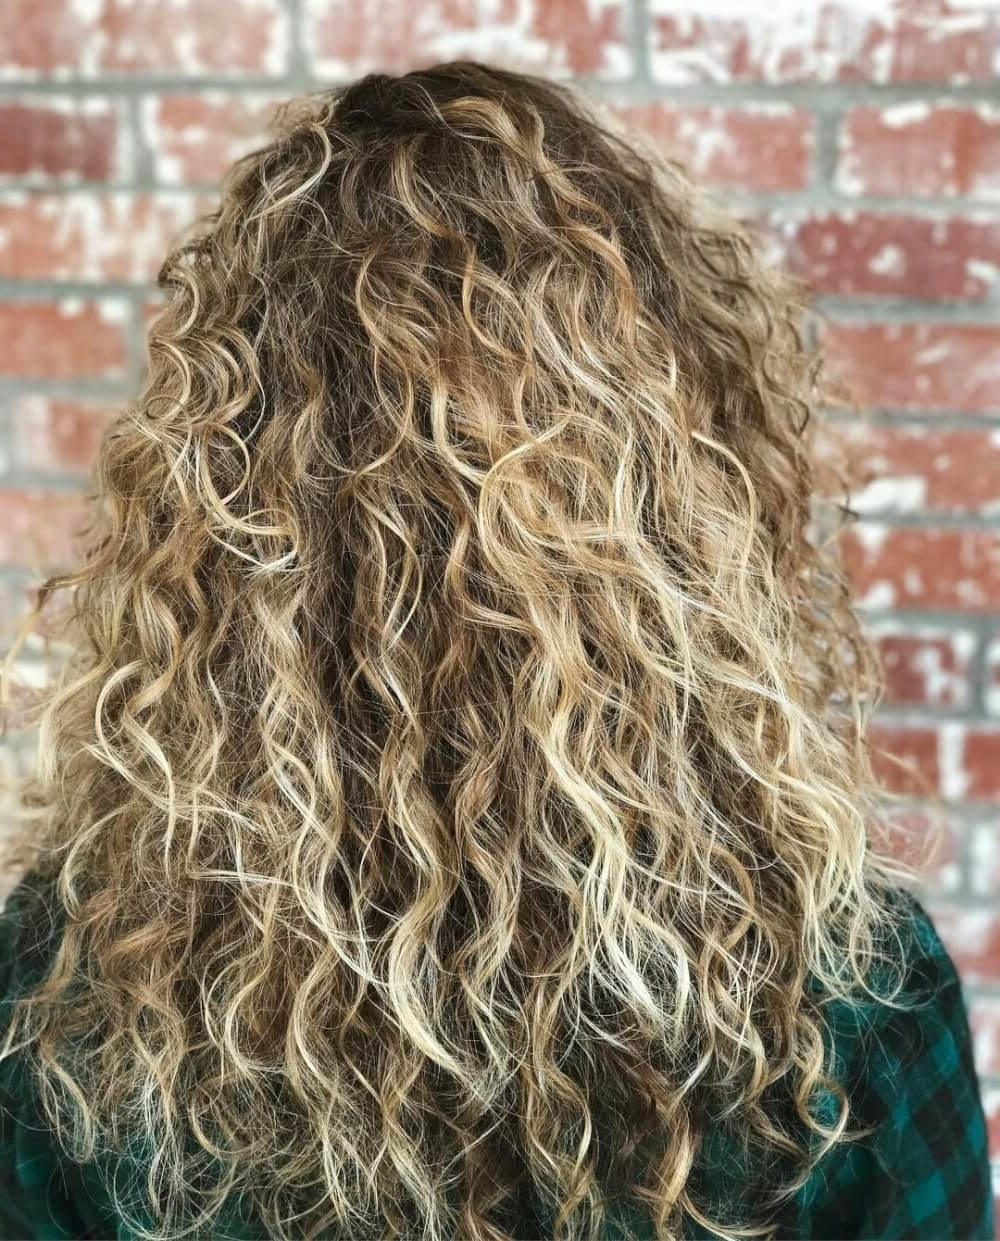 38 Top Blonde Highlights Of 2018 – Platinum, Ash, Dirty, Honey & Dark Regarding Widely Used Icy Highlights And Loose Curls Blonde Hairstyles (View 3 of 20)